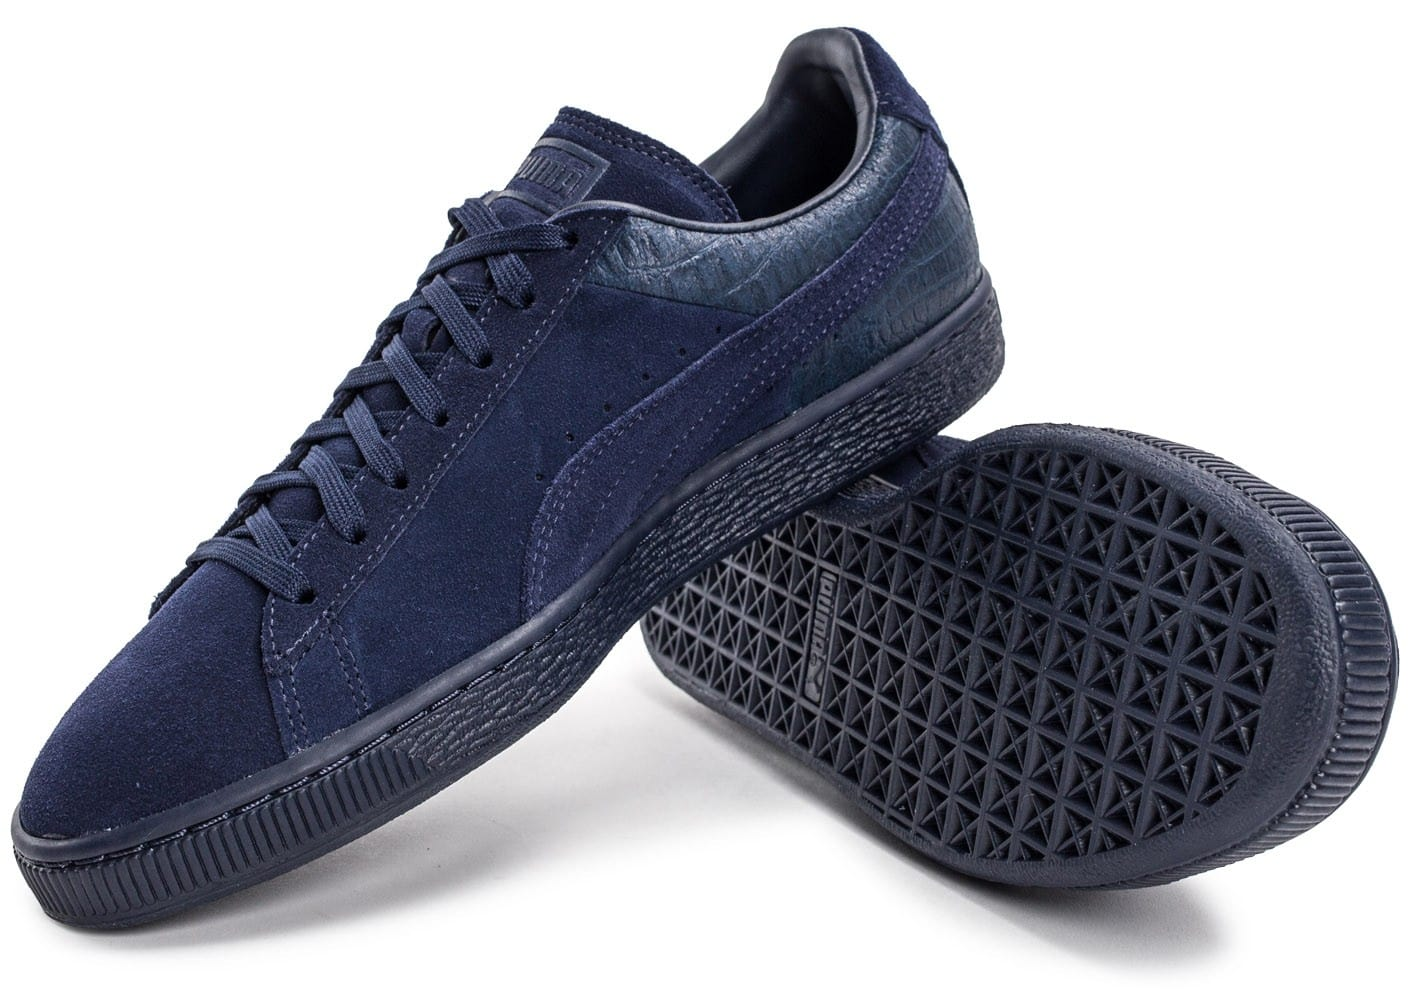 soldes puma su de classic casual emboss bleu marine chaussures homme chausport. Black Bedroom Furniture Sets. Home Design Ideas